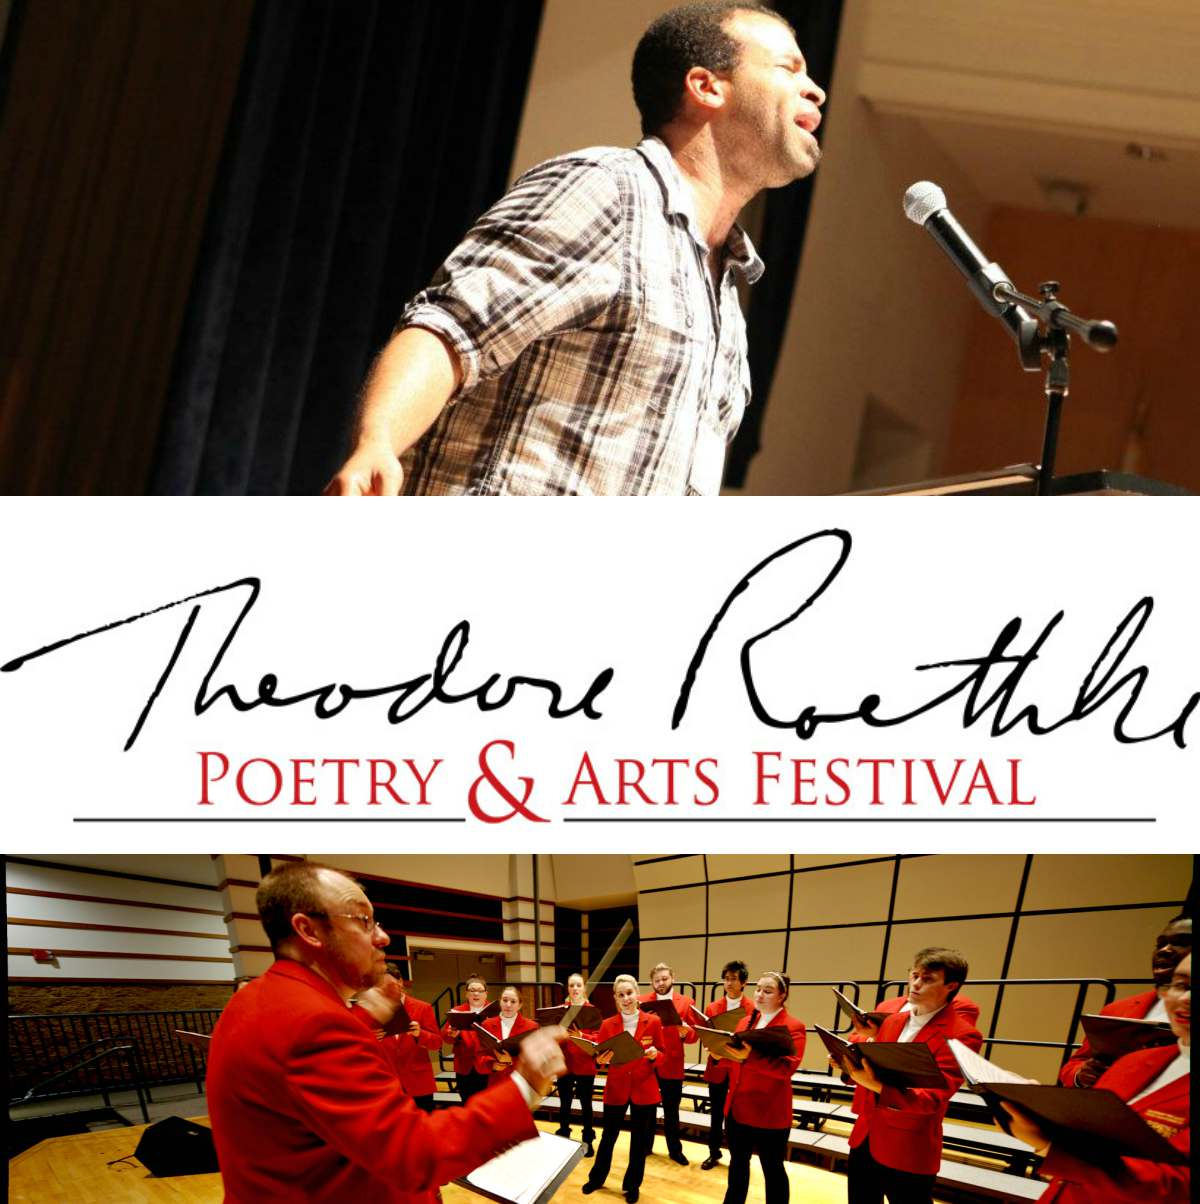 Promotion for Roethke Fest with event logo and images of events.